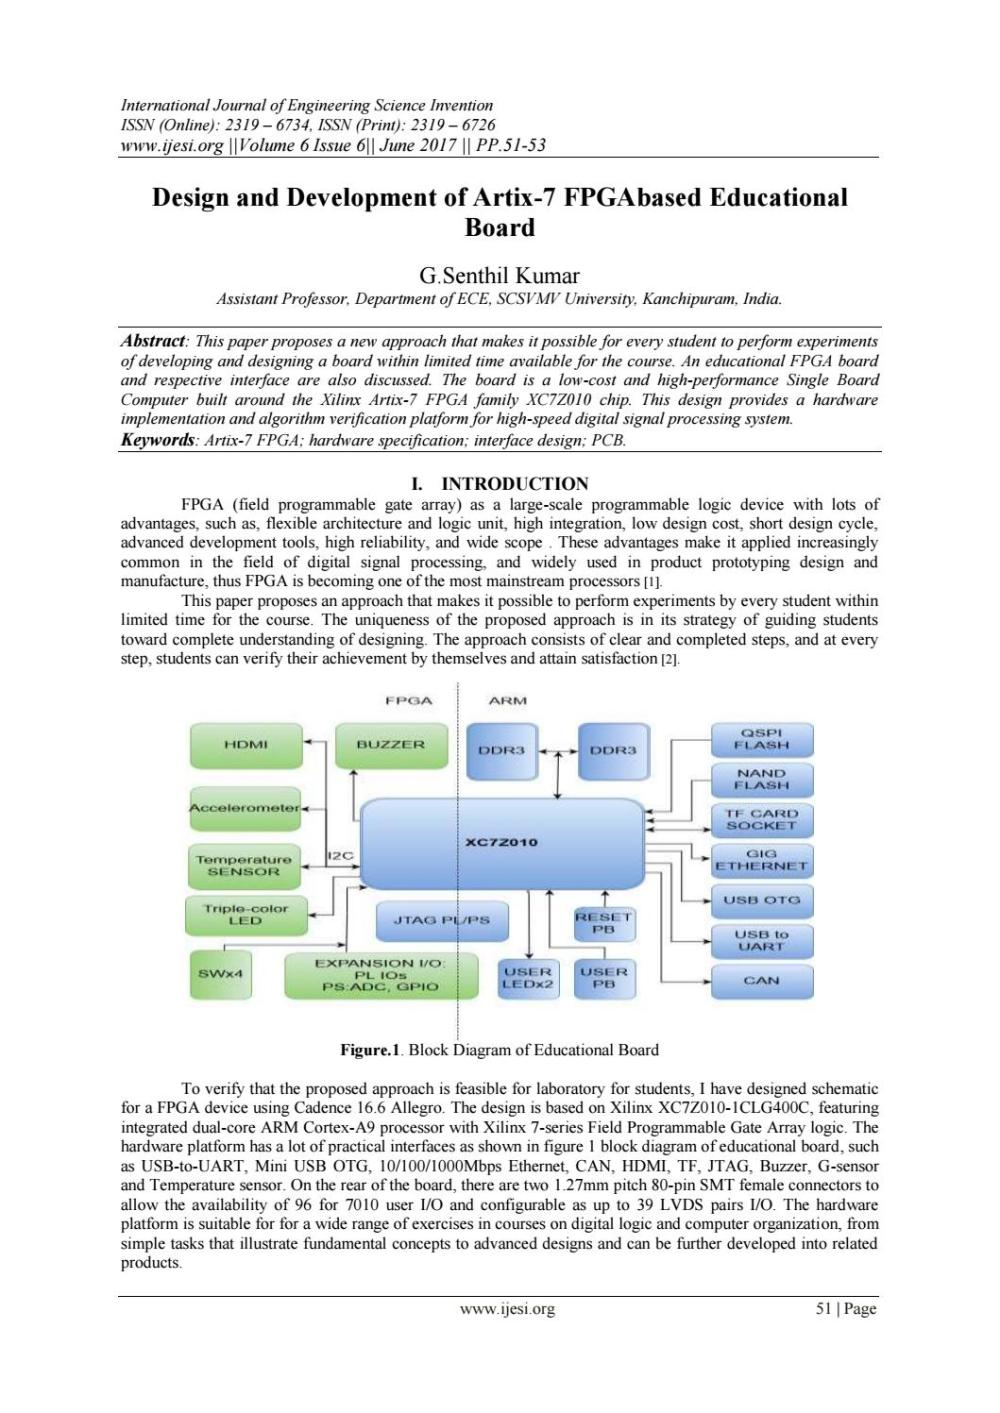 medium resolution of design and development of artix 7 fpgabased educational board by invention journals issuu